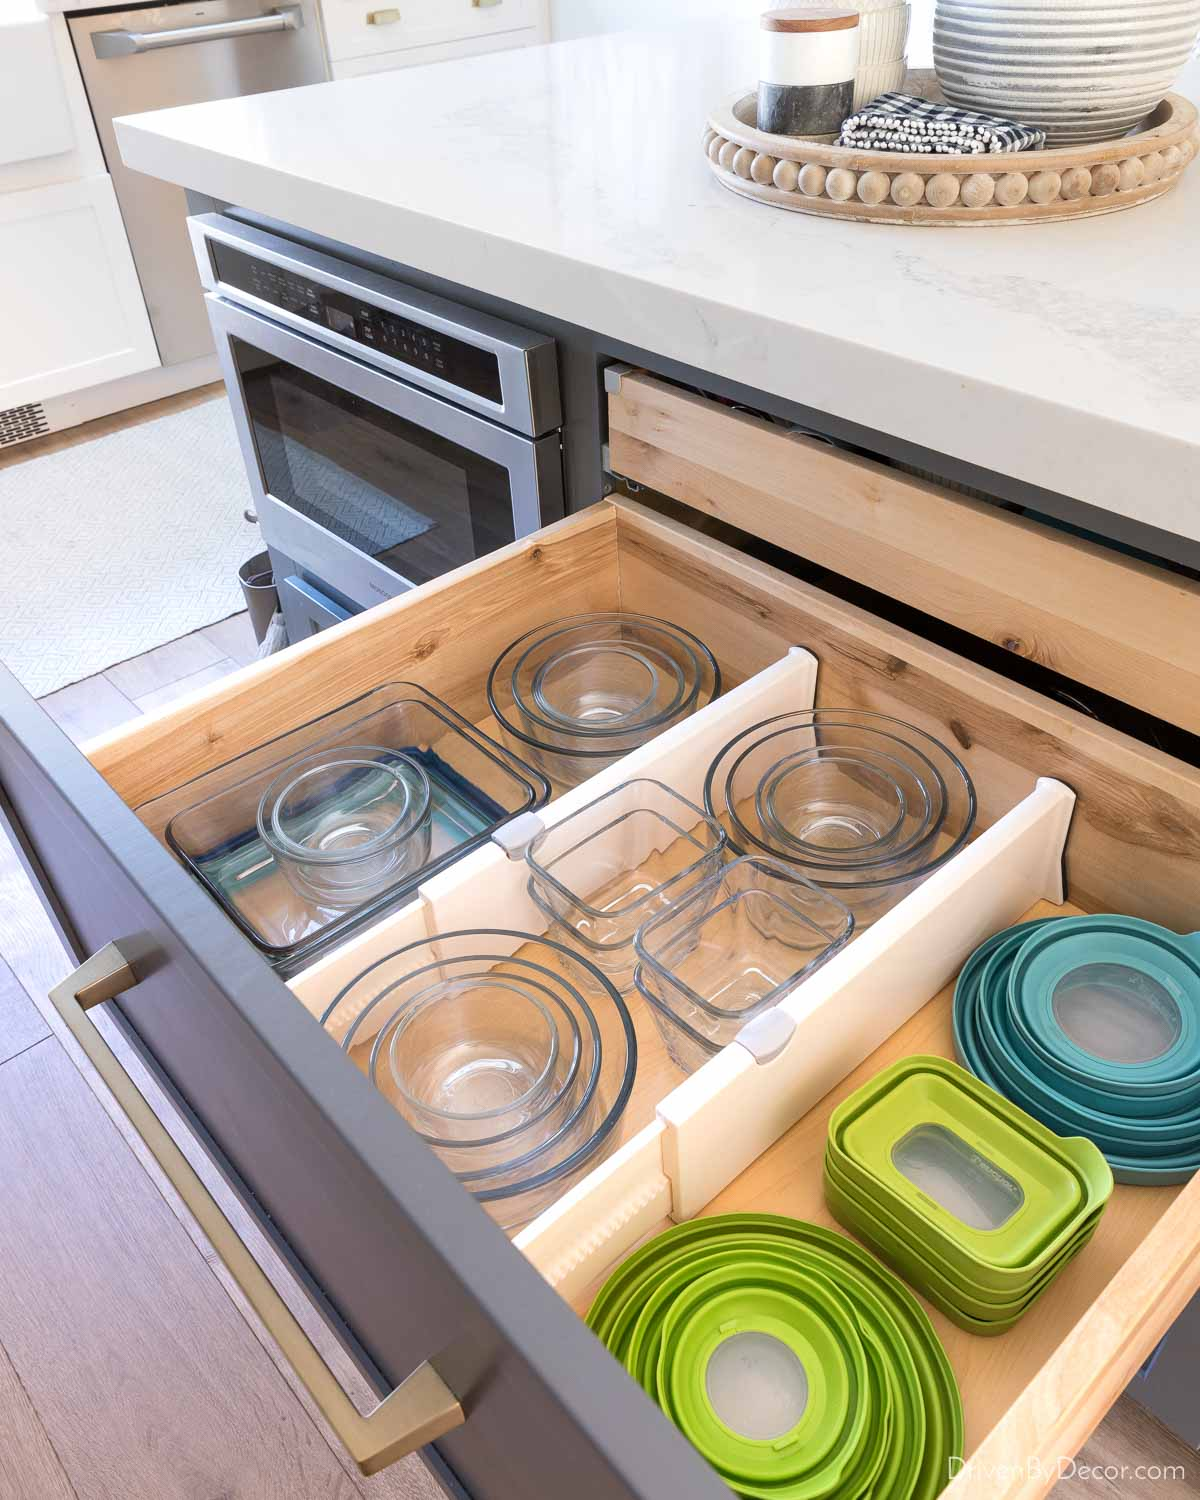 These dividers are some of my favorite kitchen drawer organizers!